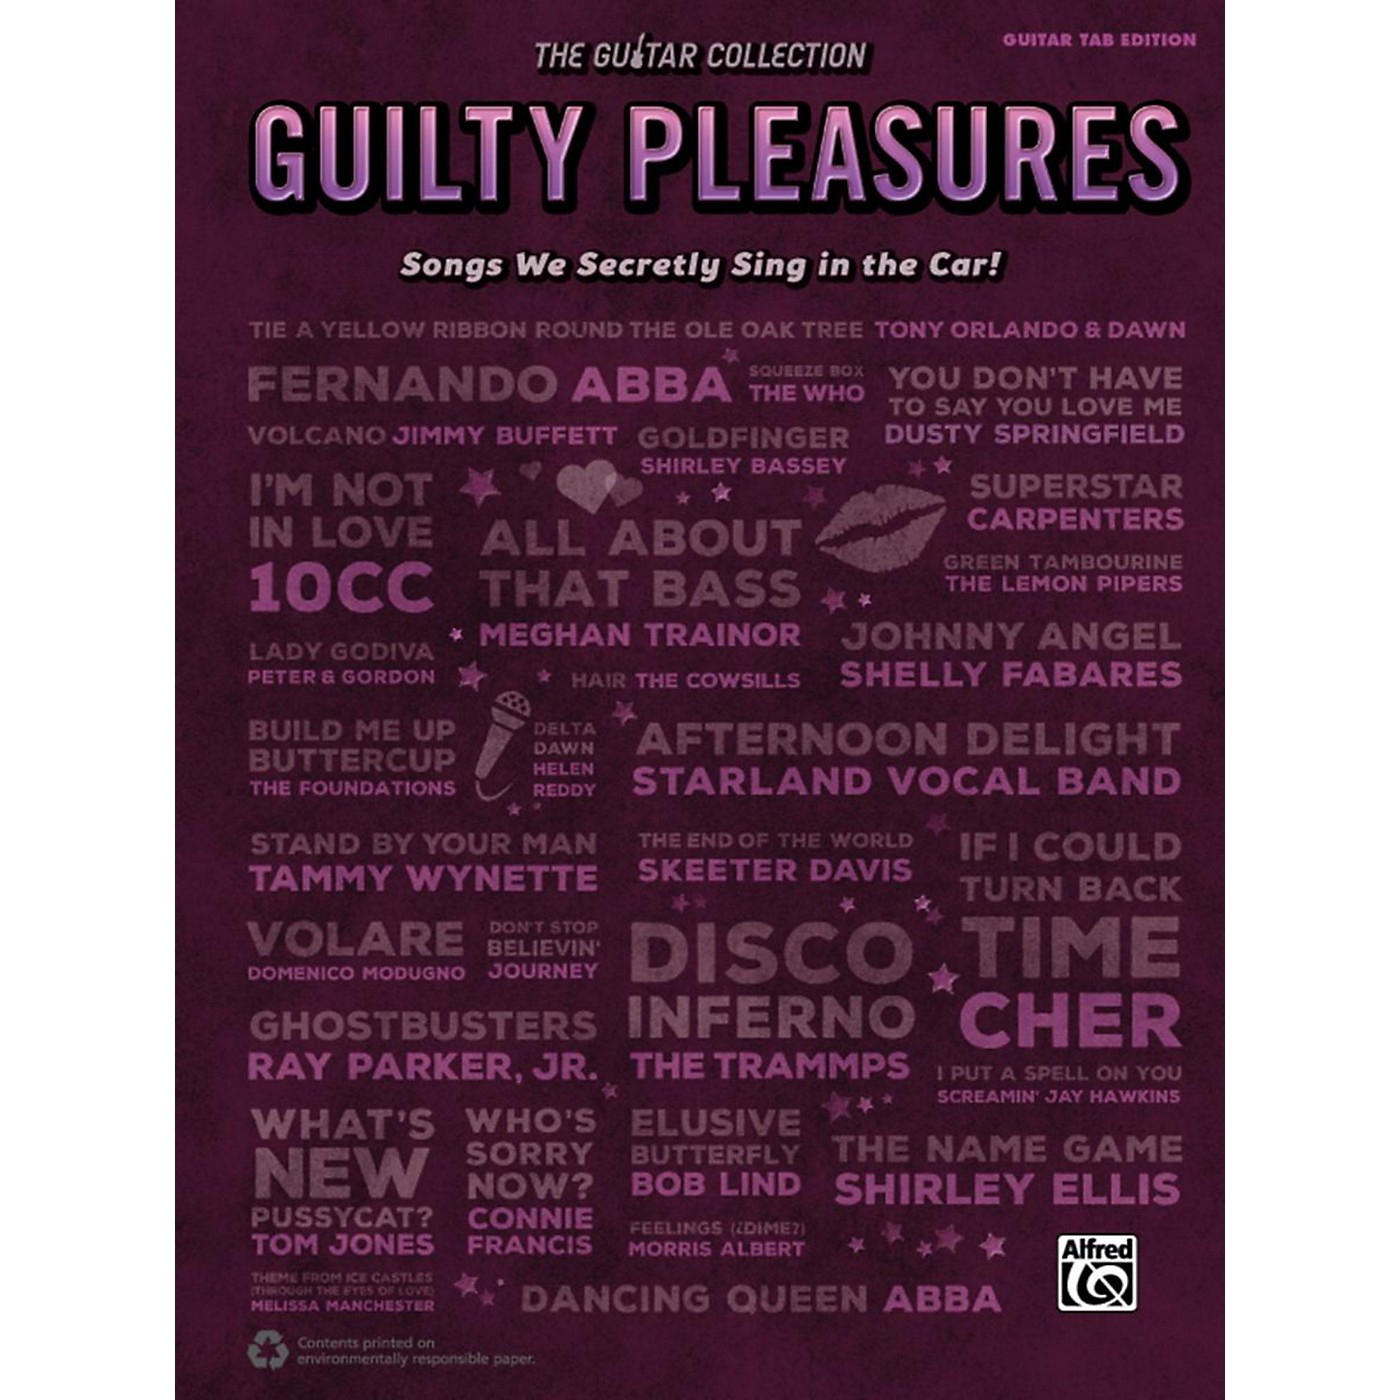 Alfred The Guitar Collection: Guilty Pleasures Guitar TAB Edition thumbnail